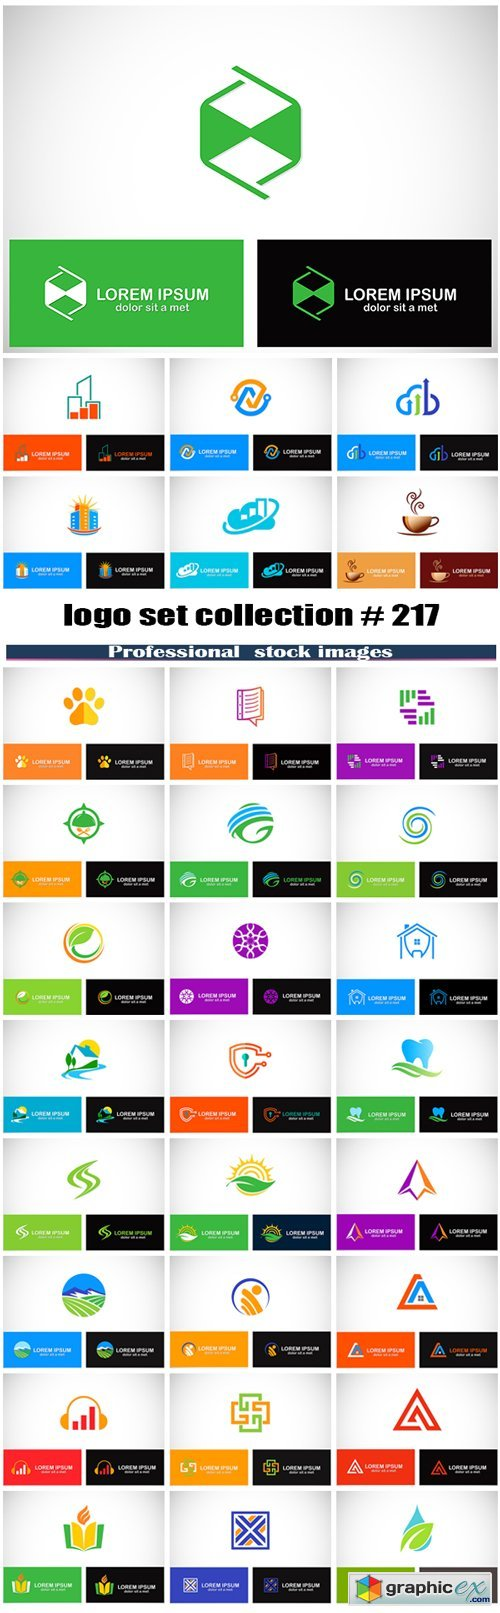 Logo set collection # 217